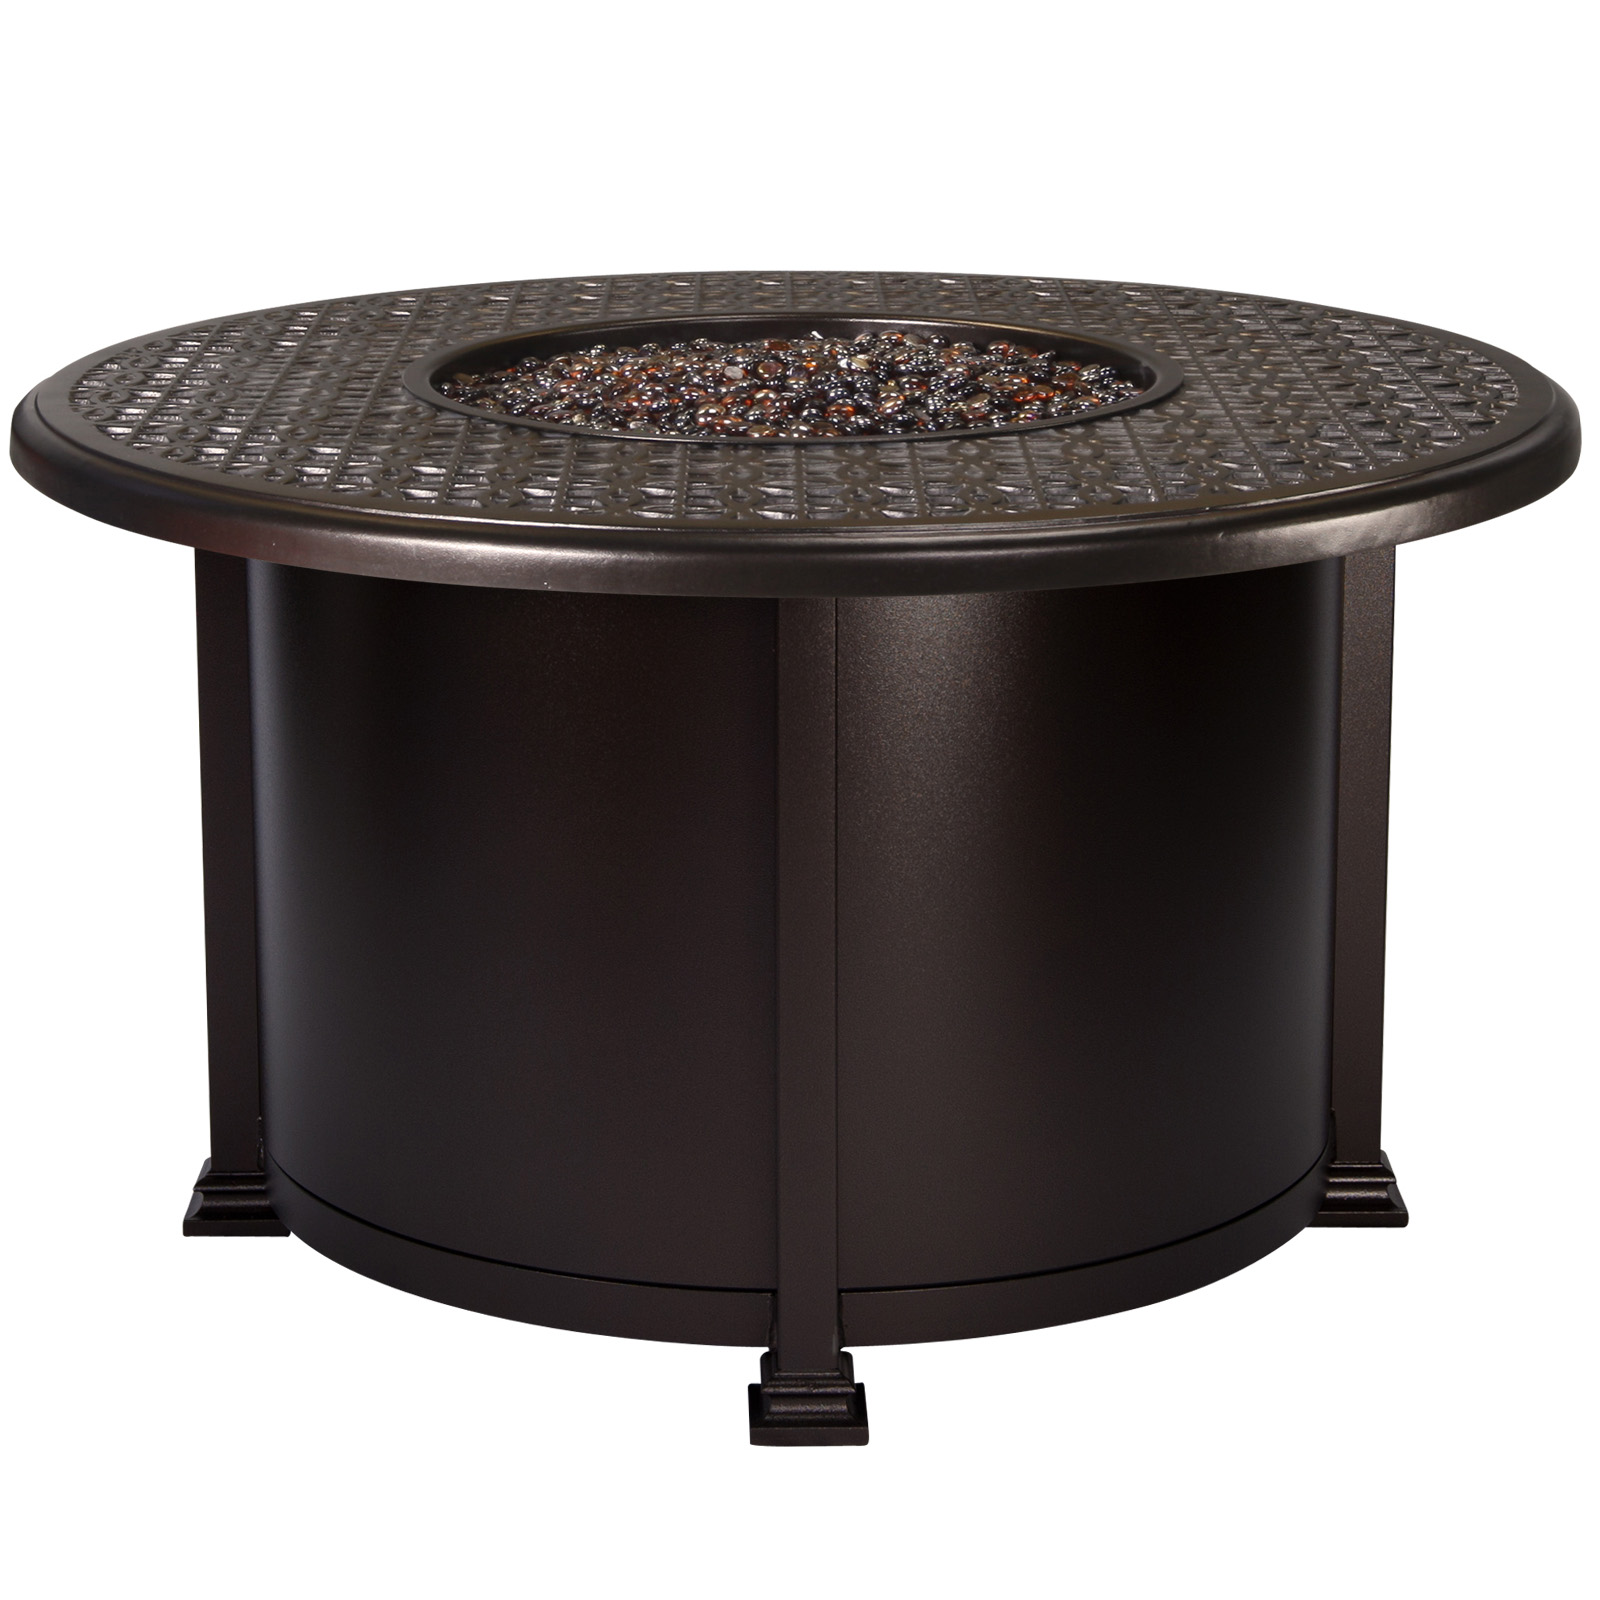 "OW Lee Richmond 42"" Round Chat Fire Table"